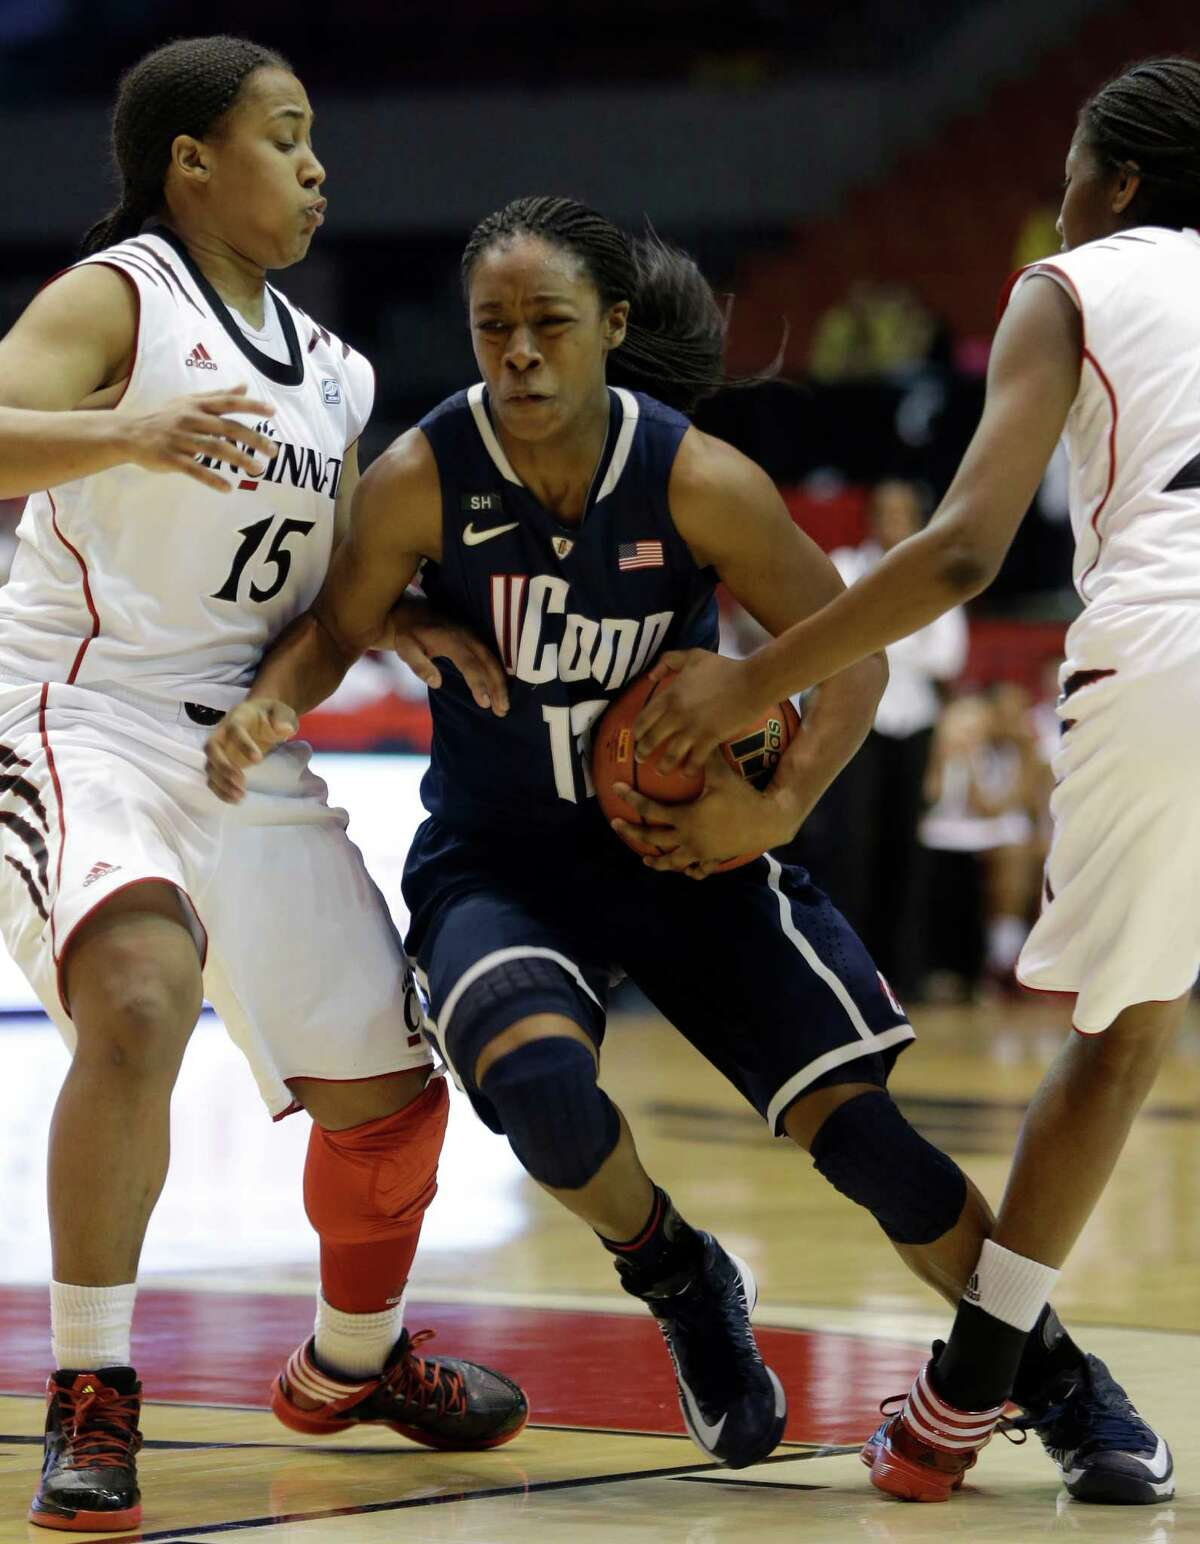 Connecticut guard Brianna Banks, center, drives between Cincinnati guard Alexis Durley (15) and guard Jasmine Whitfield, right, in the second half of an NCAA college basketball game on Saturday, Jan. 26, 2013, in Cincinnati. Connecticut won 67-31. (AP Photo/Al Behrman)